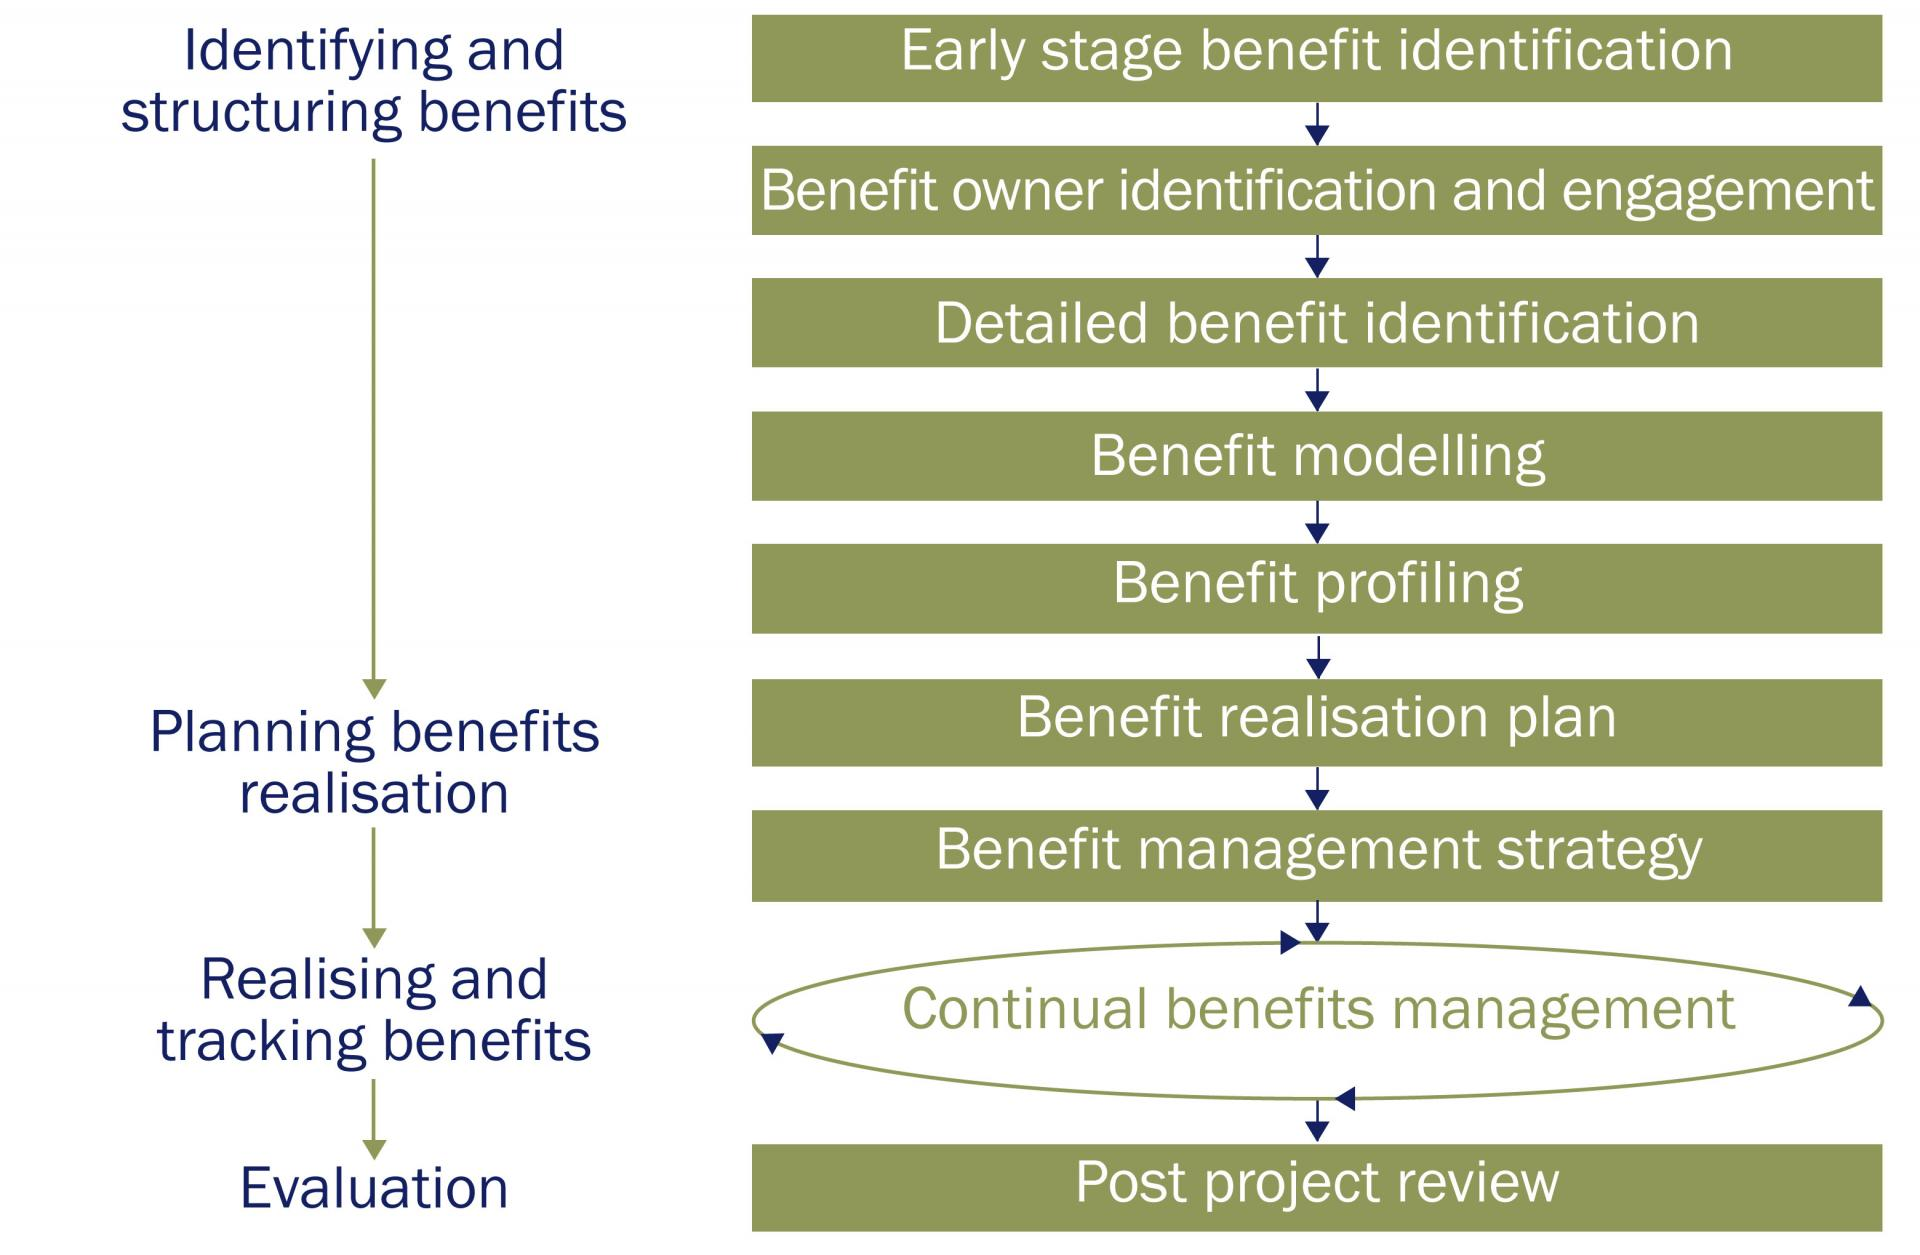 Programme and project benefits management department of finance linear version of the benefits management lifecycle xflitez Choice Image